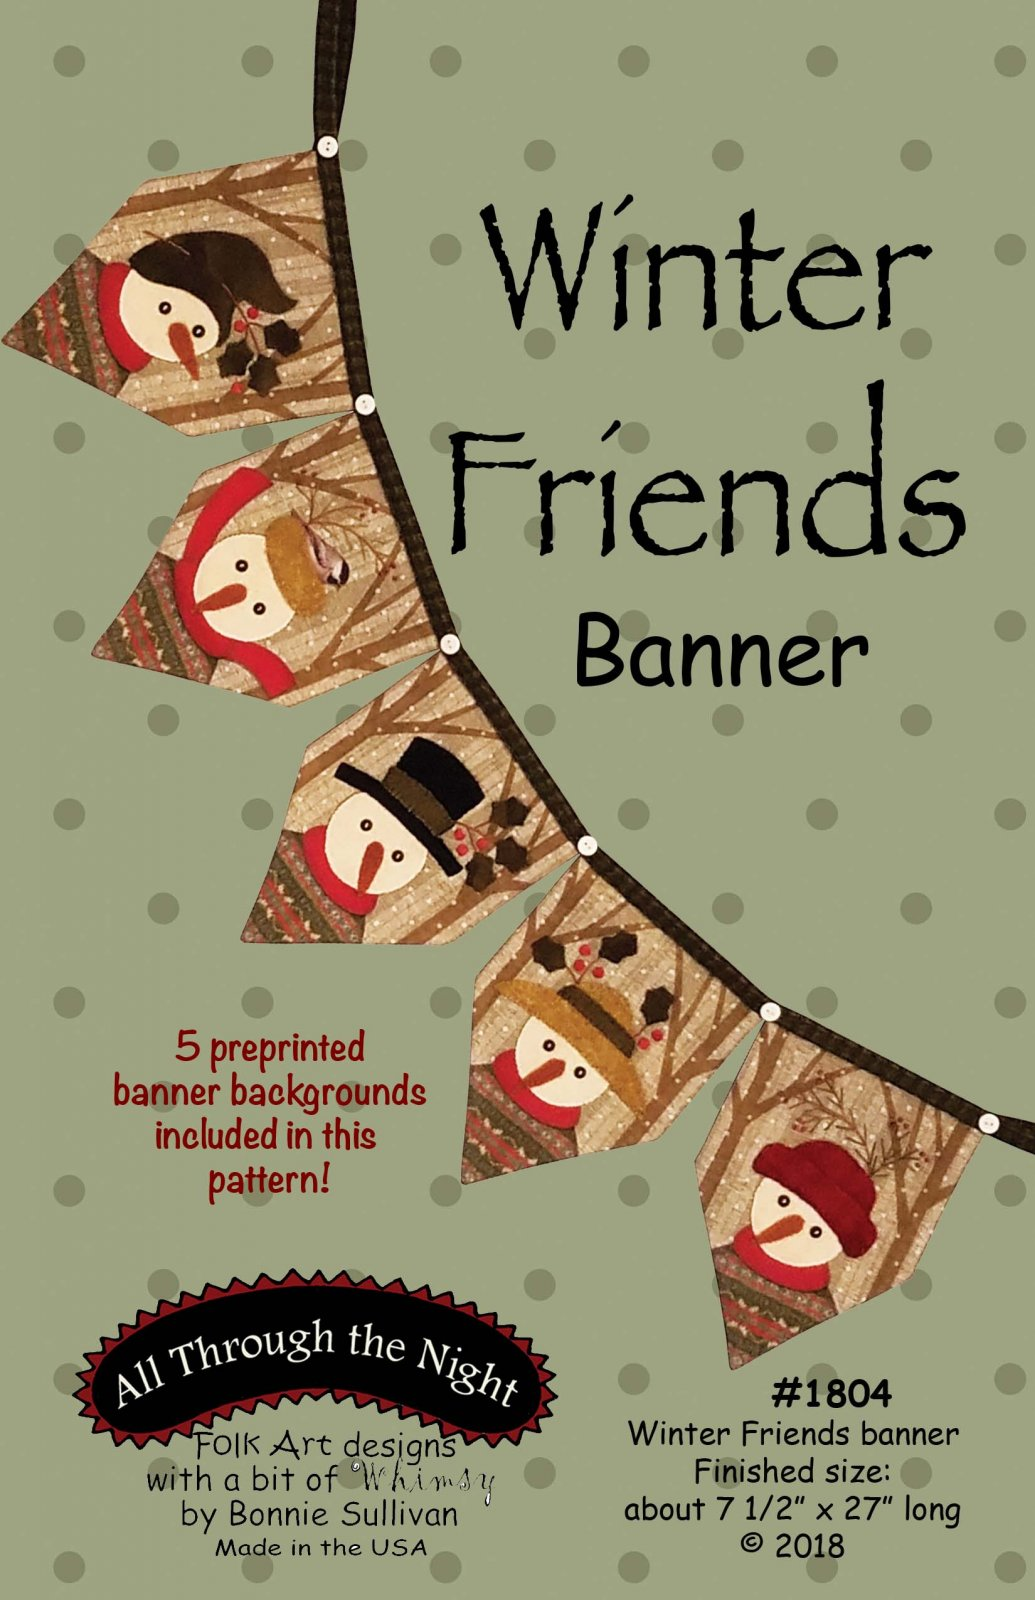 1804 Winter Friends Banner